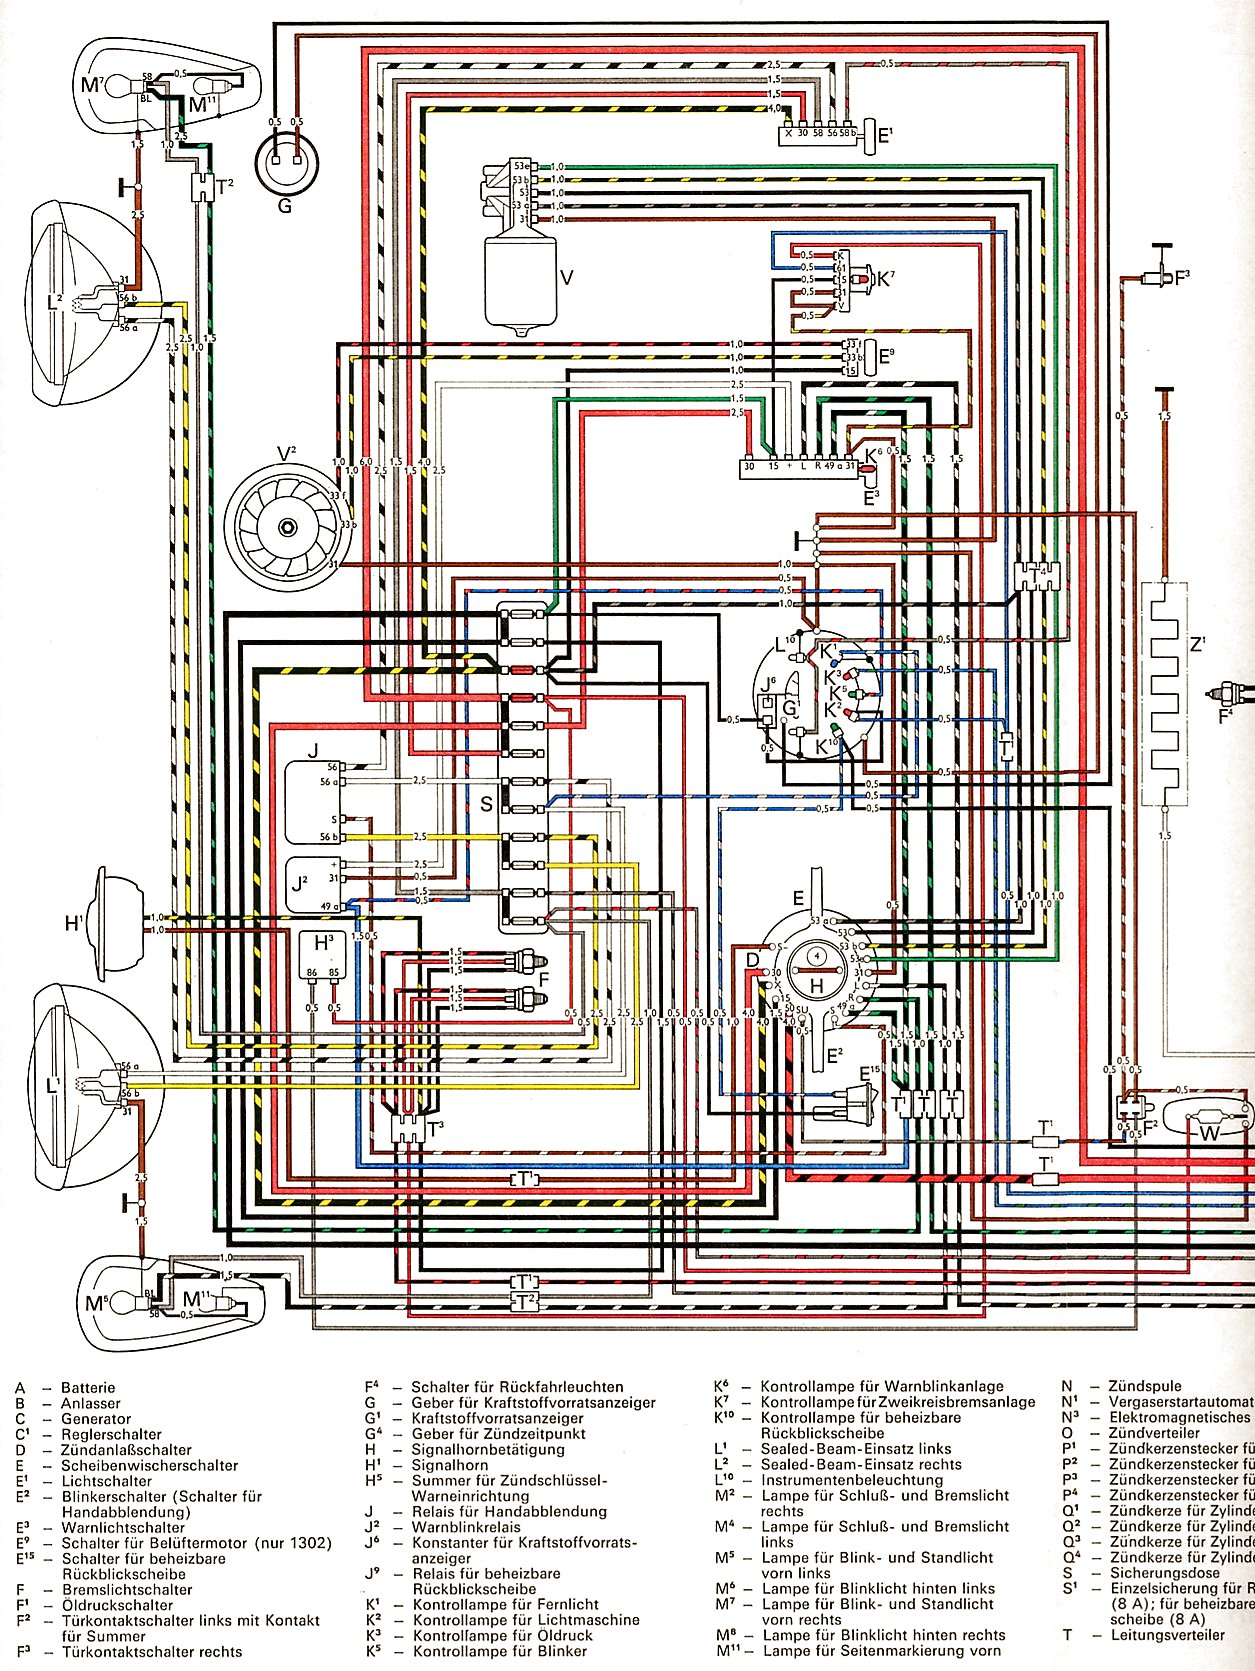 1300_and_1302_USA_from_August_1971 1 wiring diagram shoptalkforums com 72 vw bus wiring diagram at alyssarenee.co